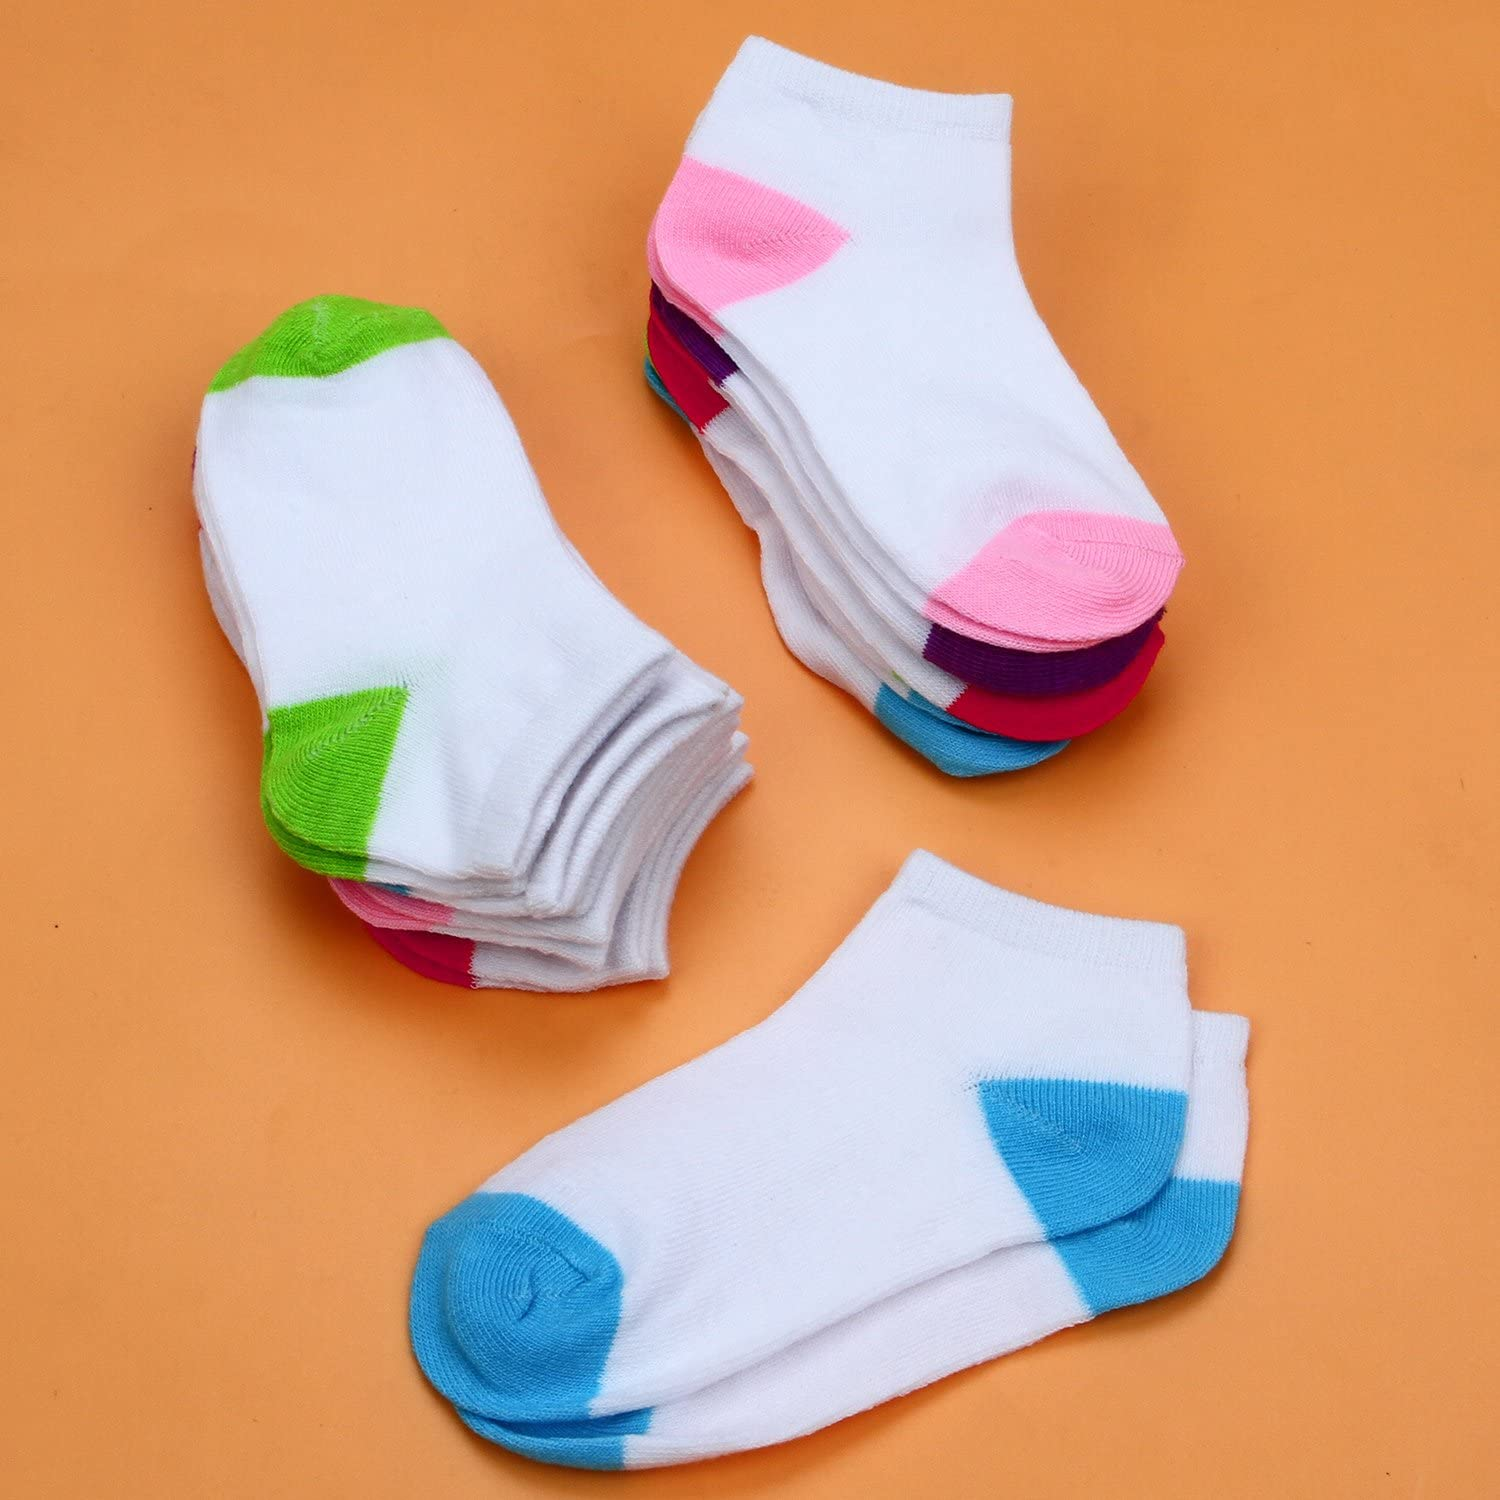 Coobey 15 Pairs Toddler Kids Half Cushion Low Cut Socks Boys Girls Ankle Cotton Socks